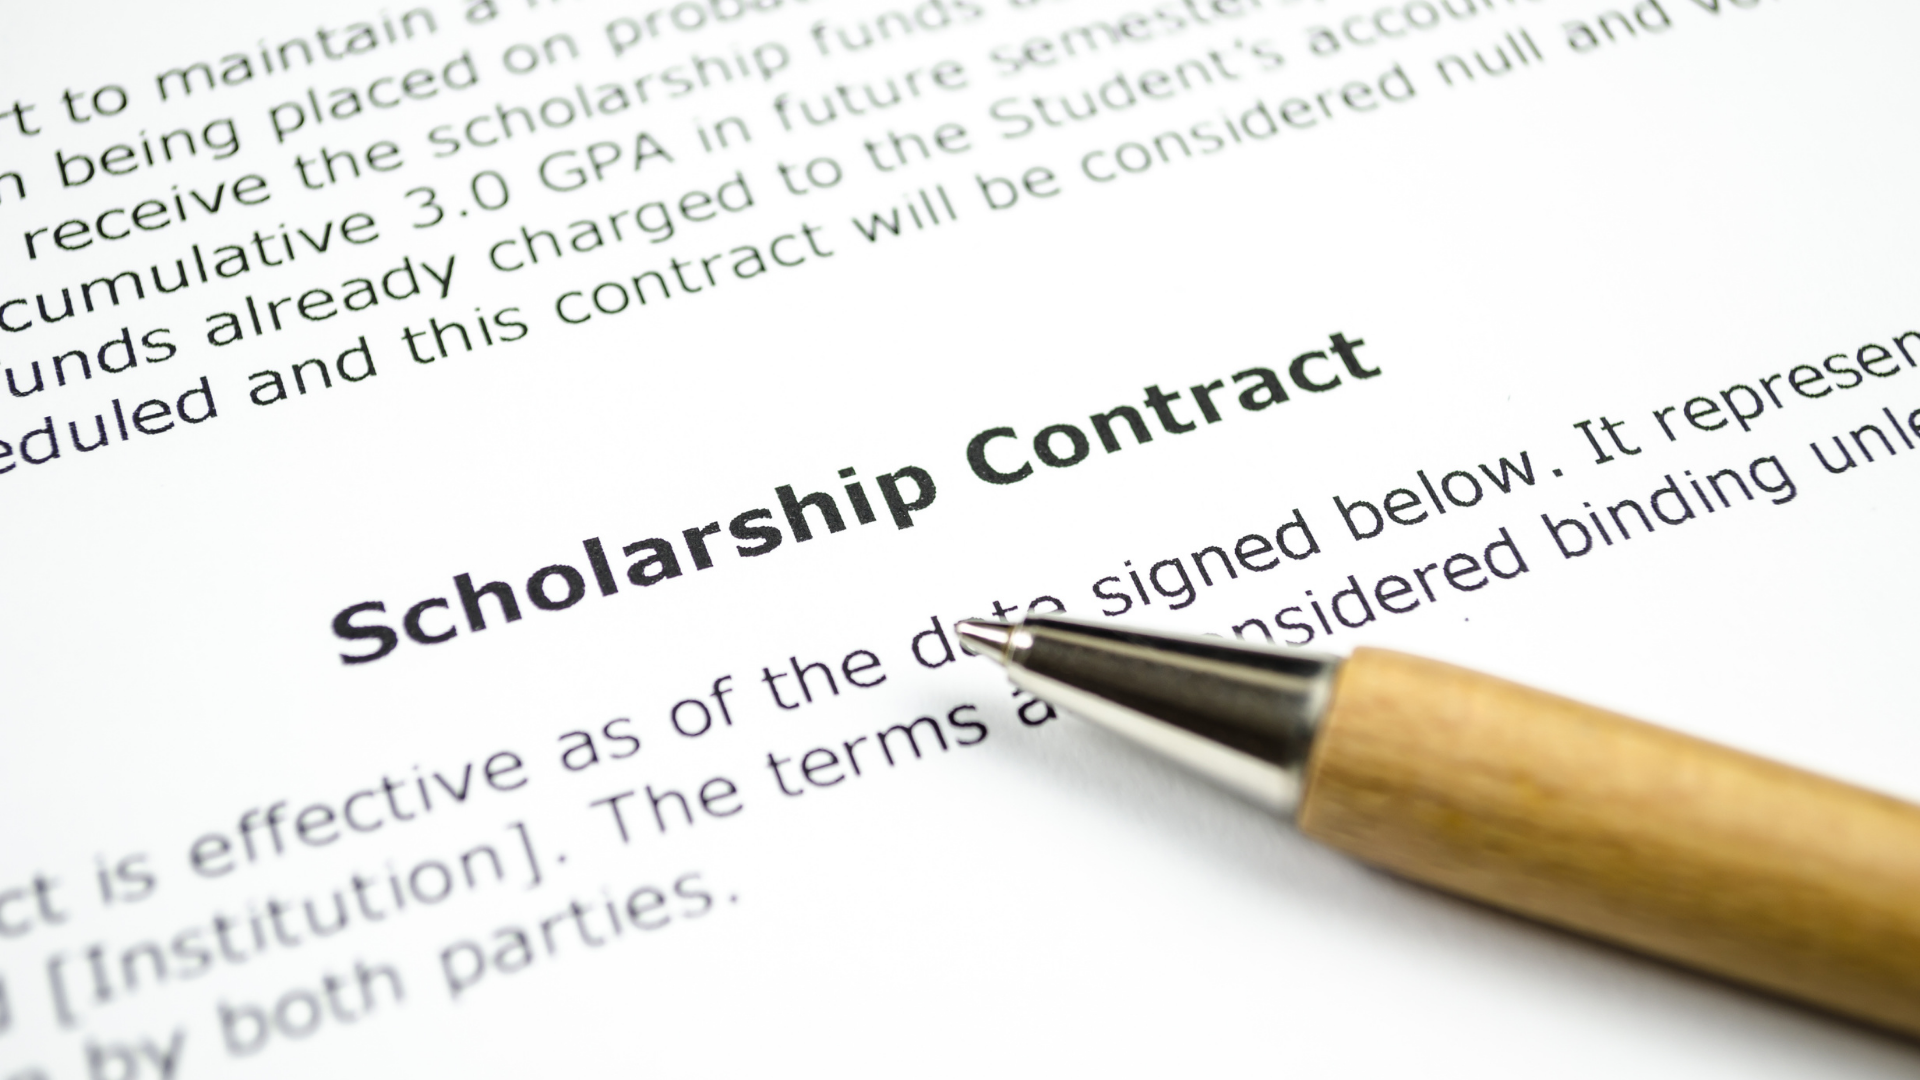 How Important is a Scholarship Contract?